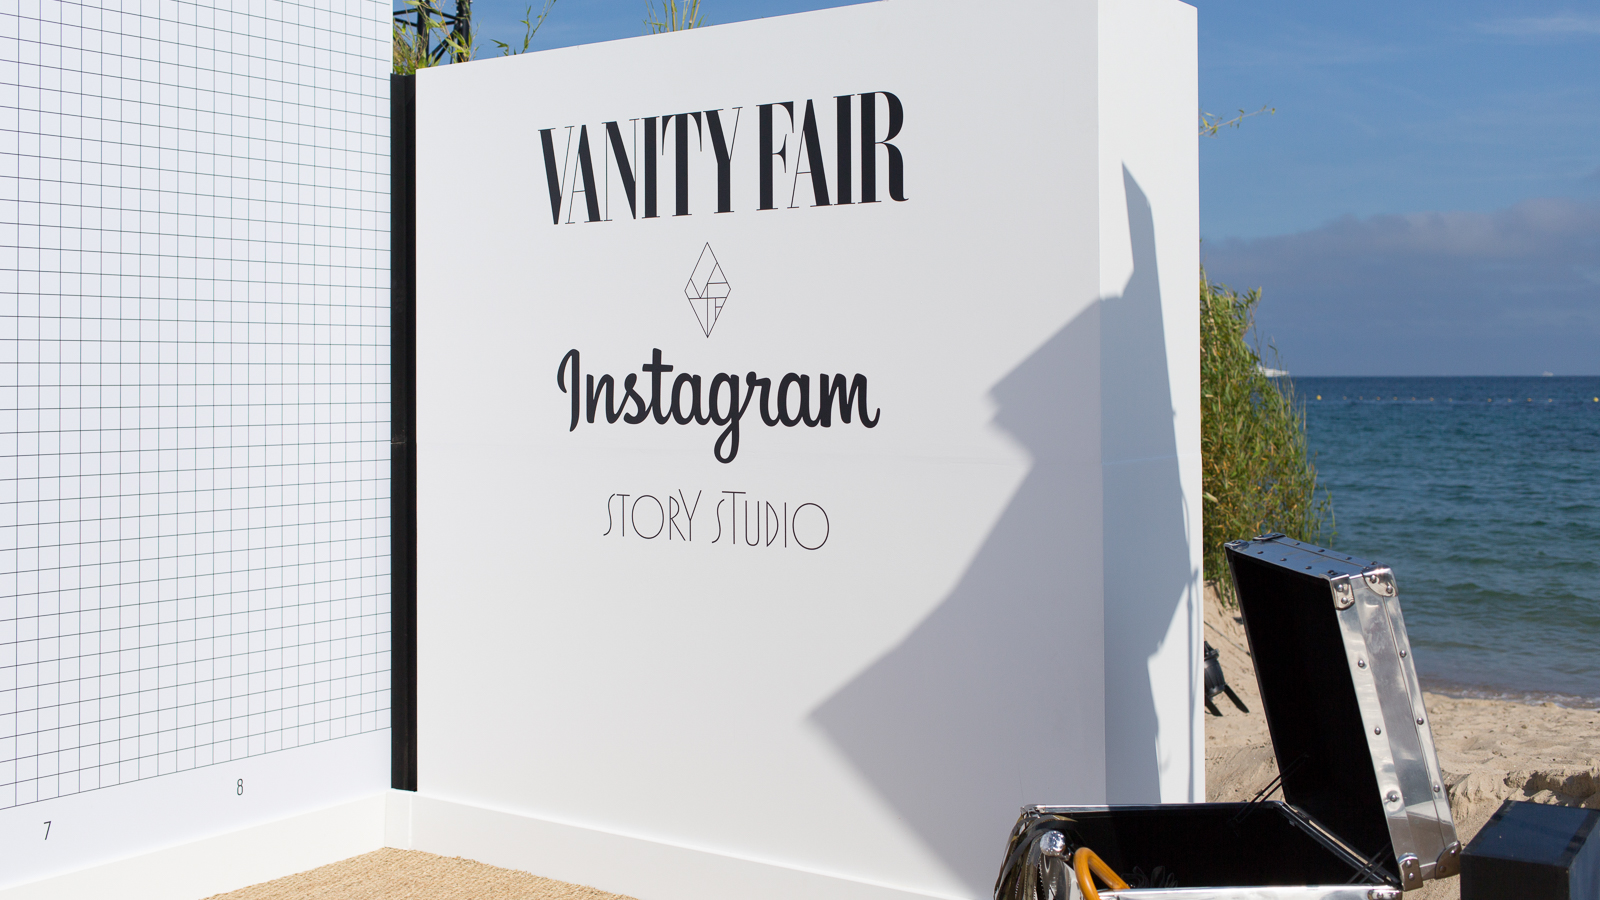 Vanity Fair x Instagram